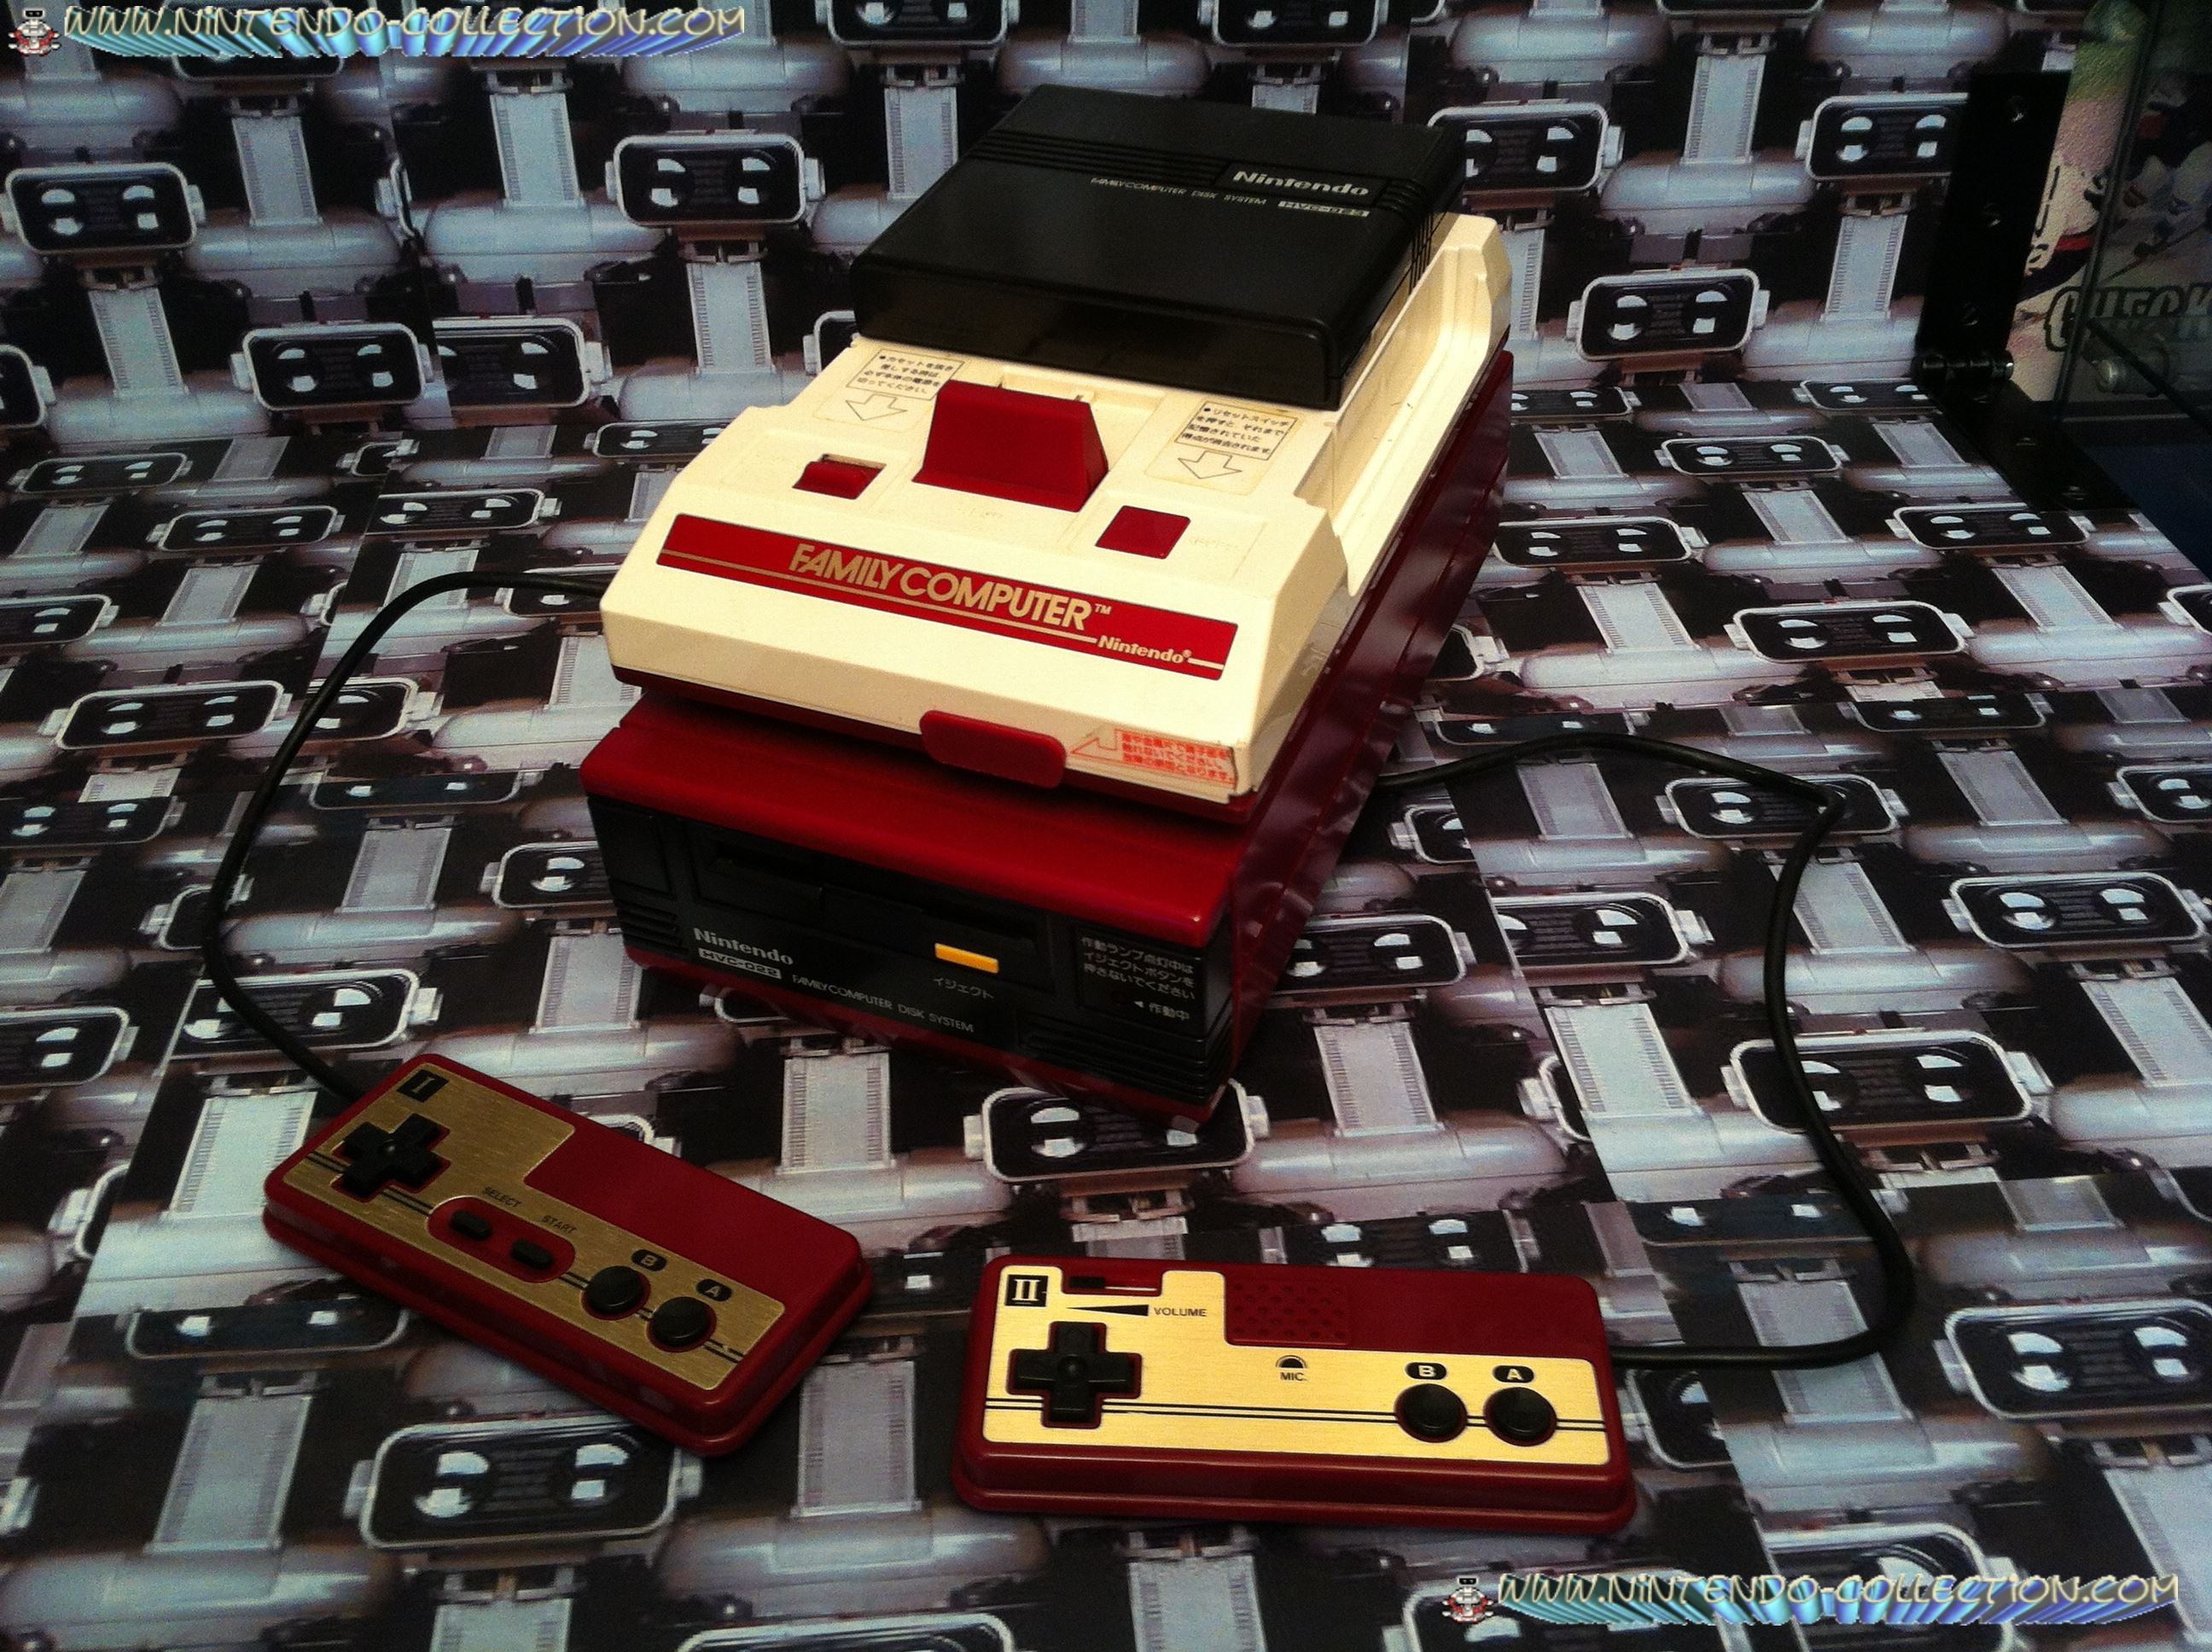 www.nintendo-collection.com - Famicom.jpg + Disk System - 2